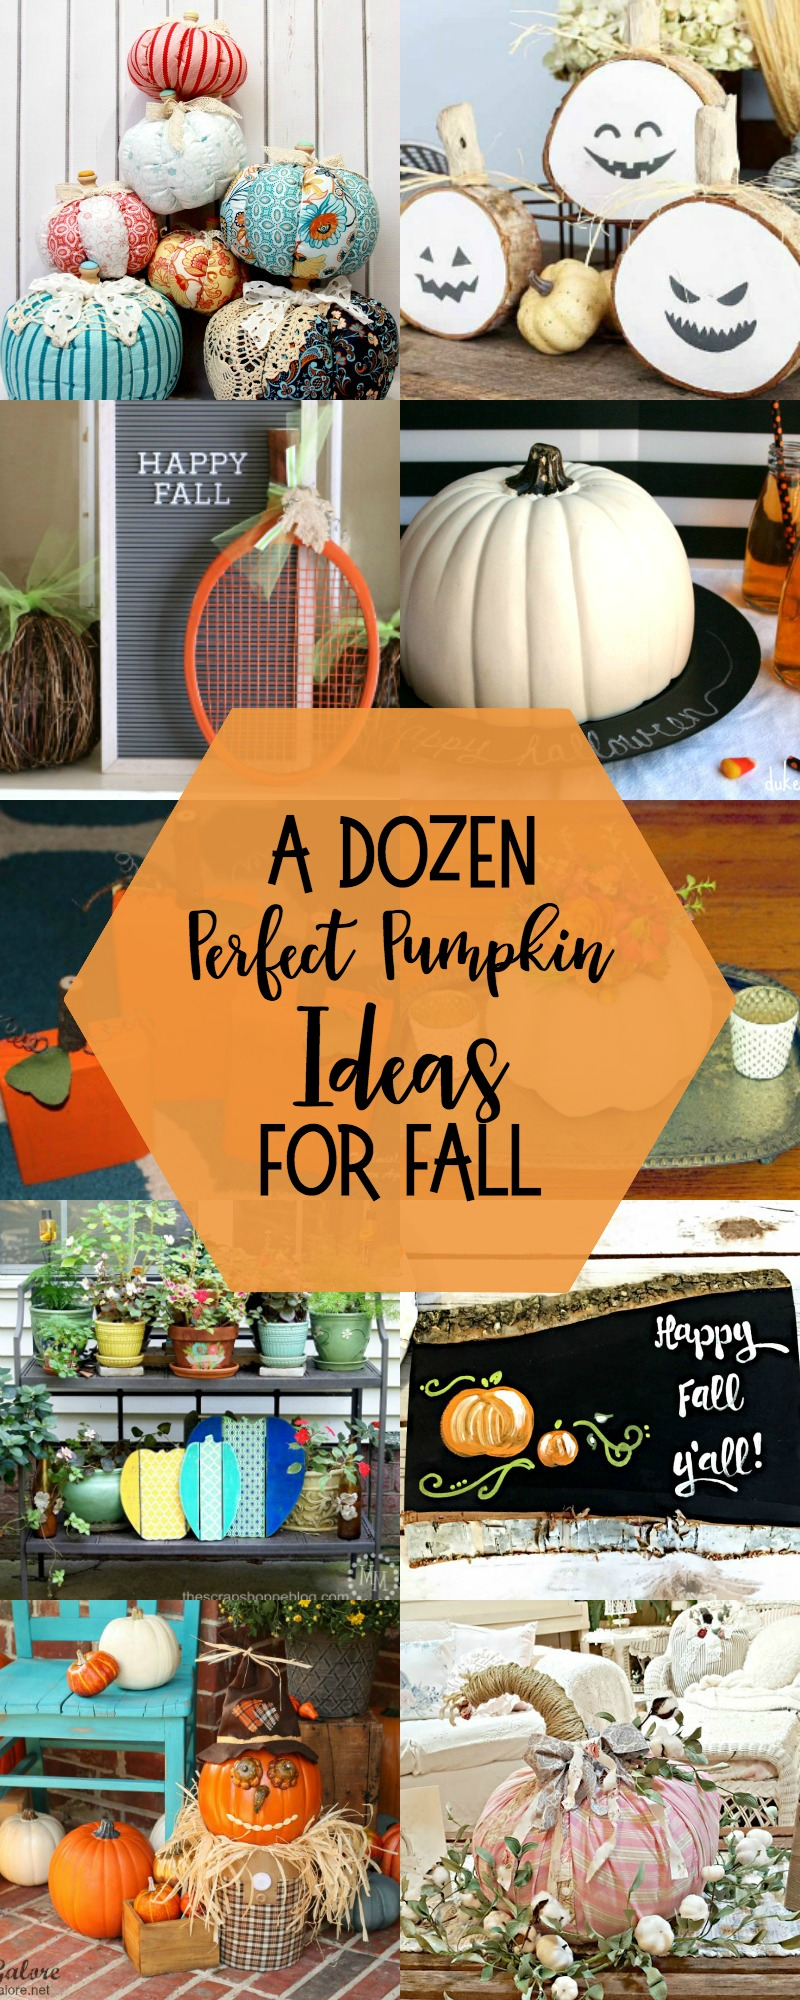 Fun Pumpkin DIY Ideas